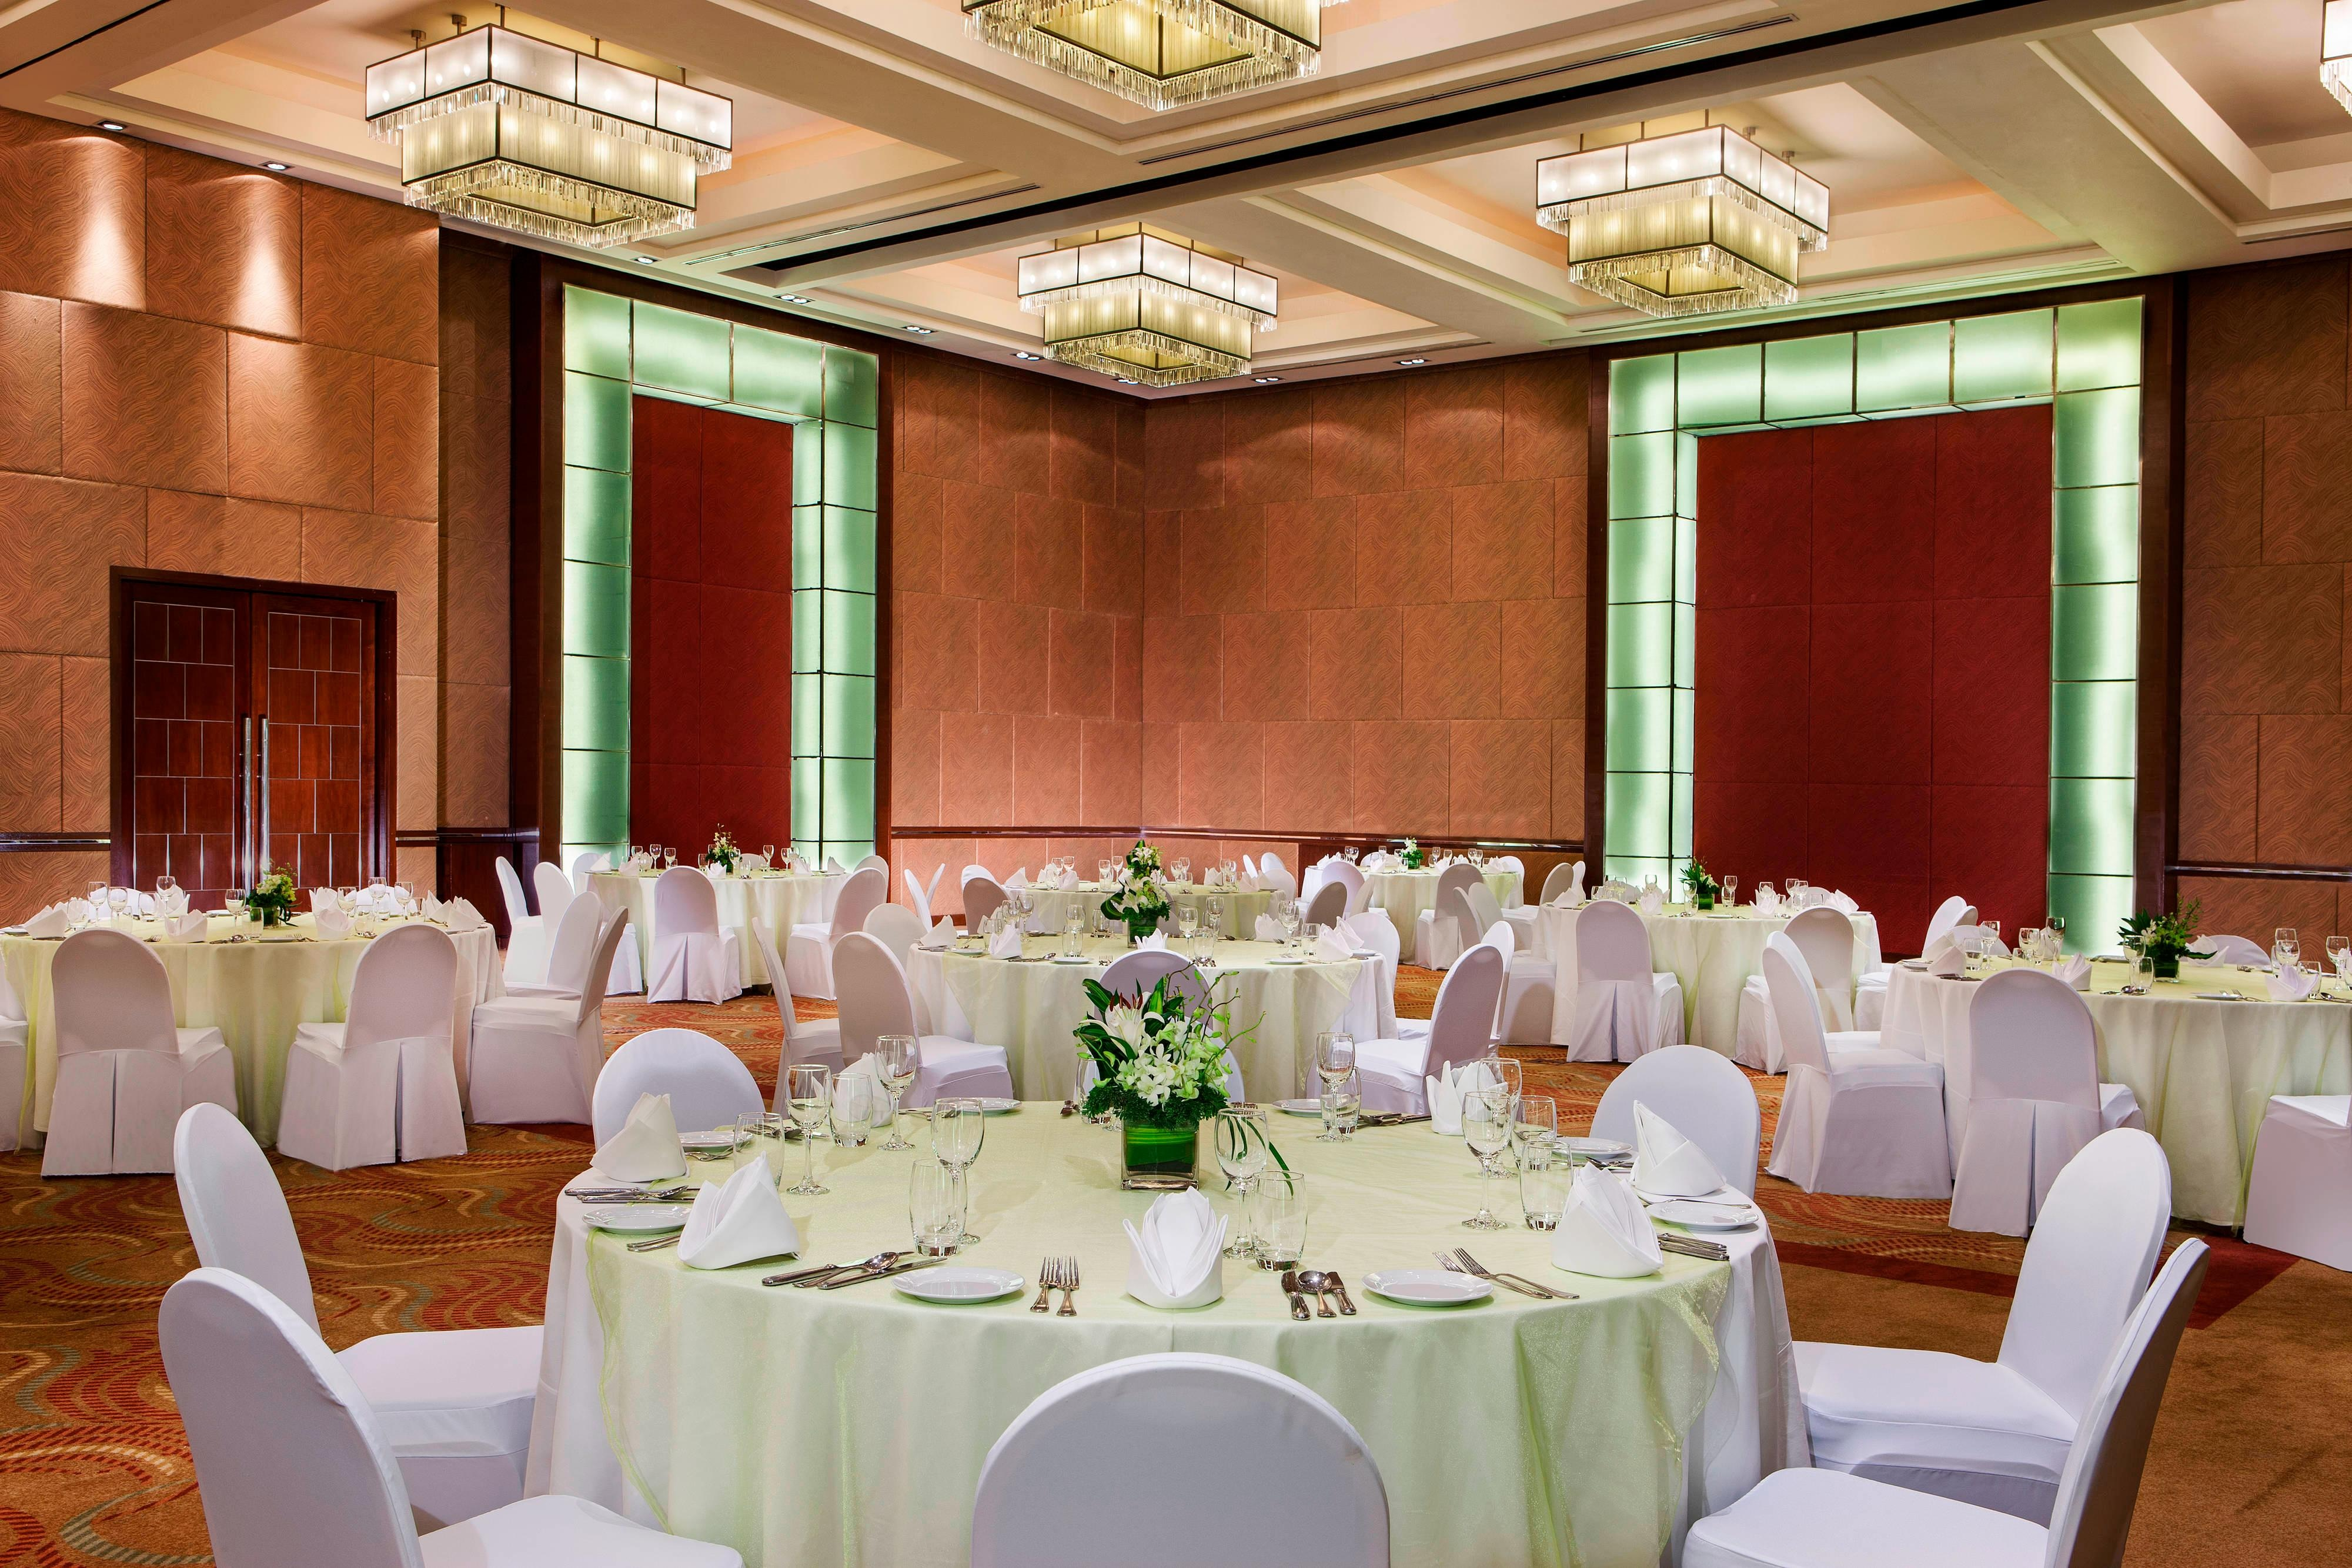 Grand Ballroom - Banquetting